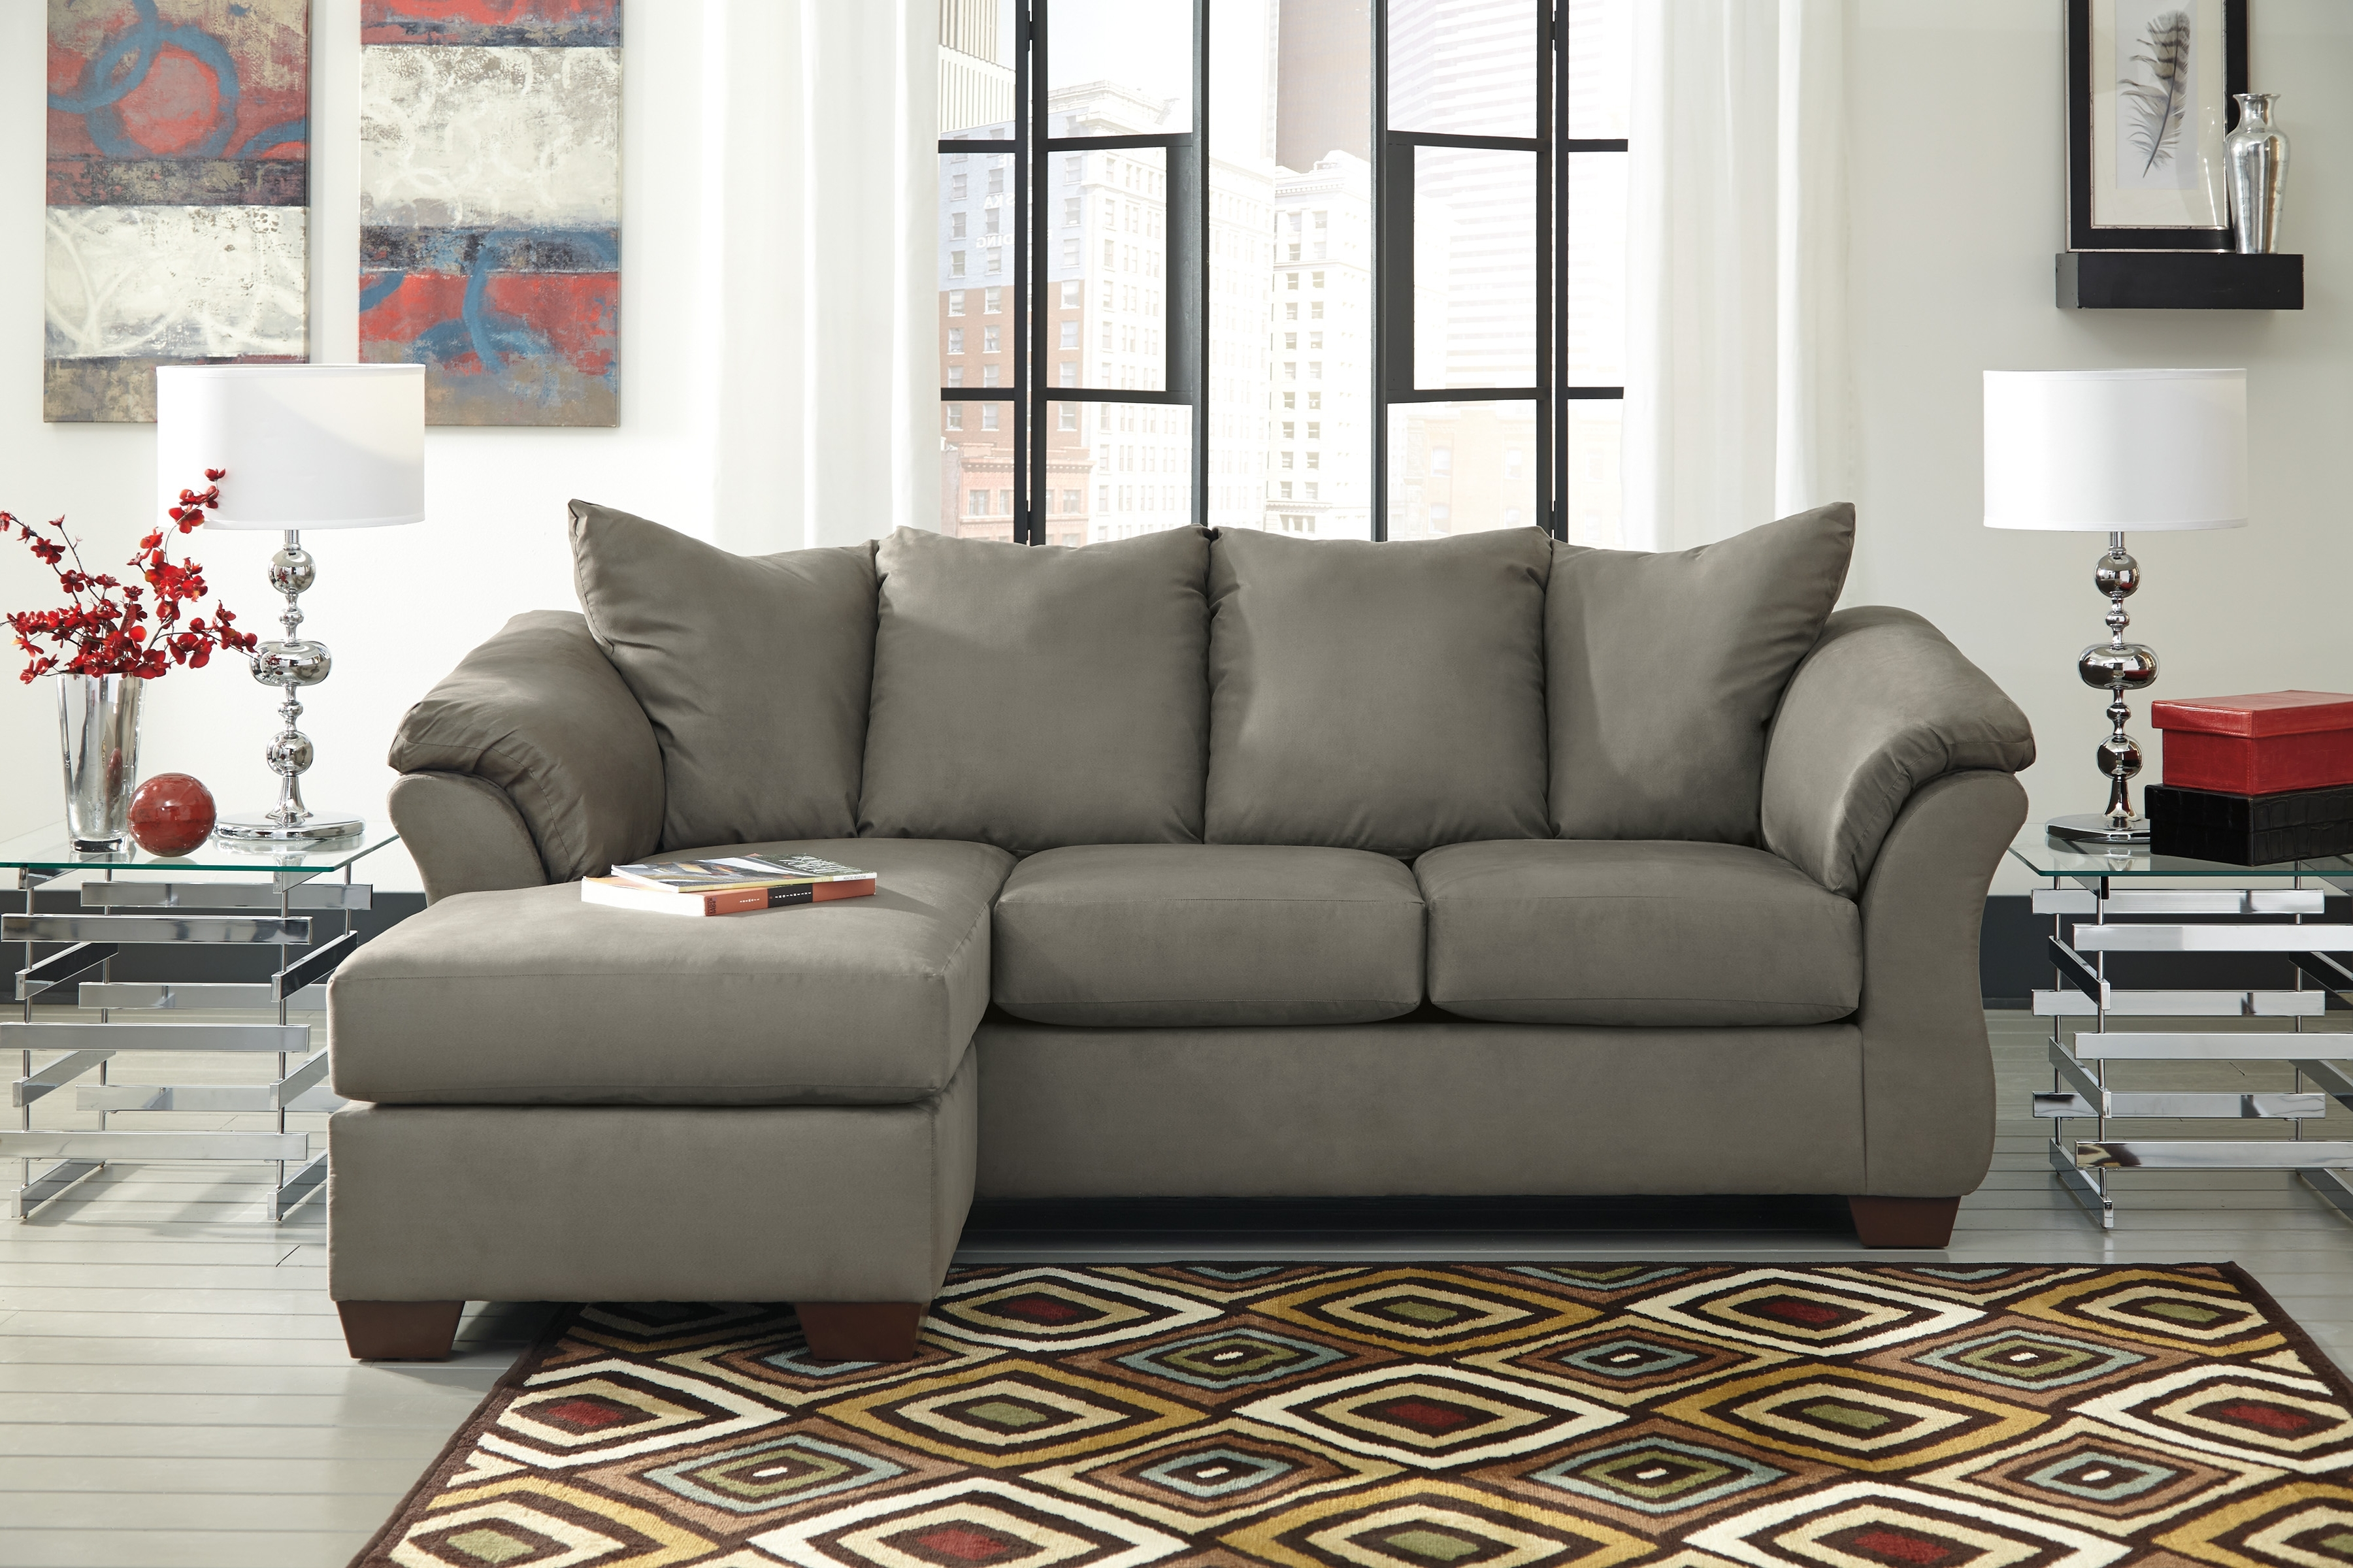 2018 Unique Ashley Furniture Sectional Sleeper Sofa 60 For 9 In Ashley Tufted Sofas (View 14 of 15)